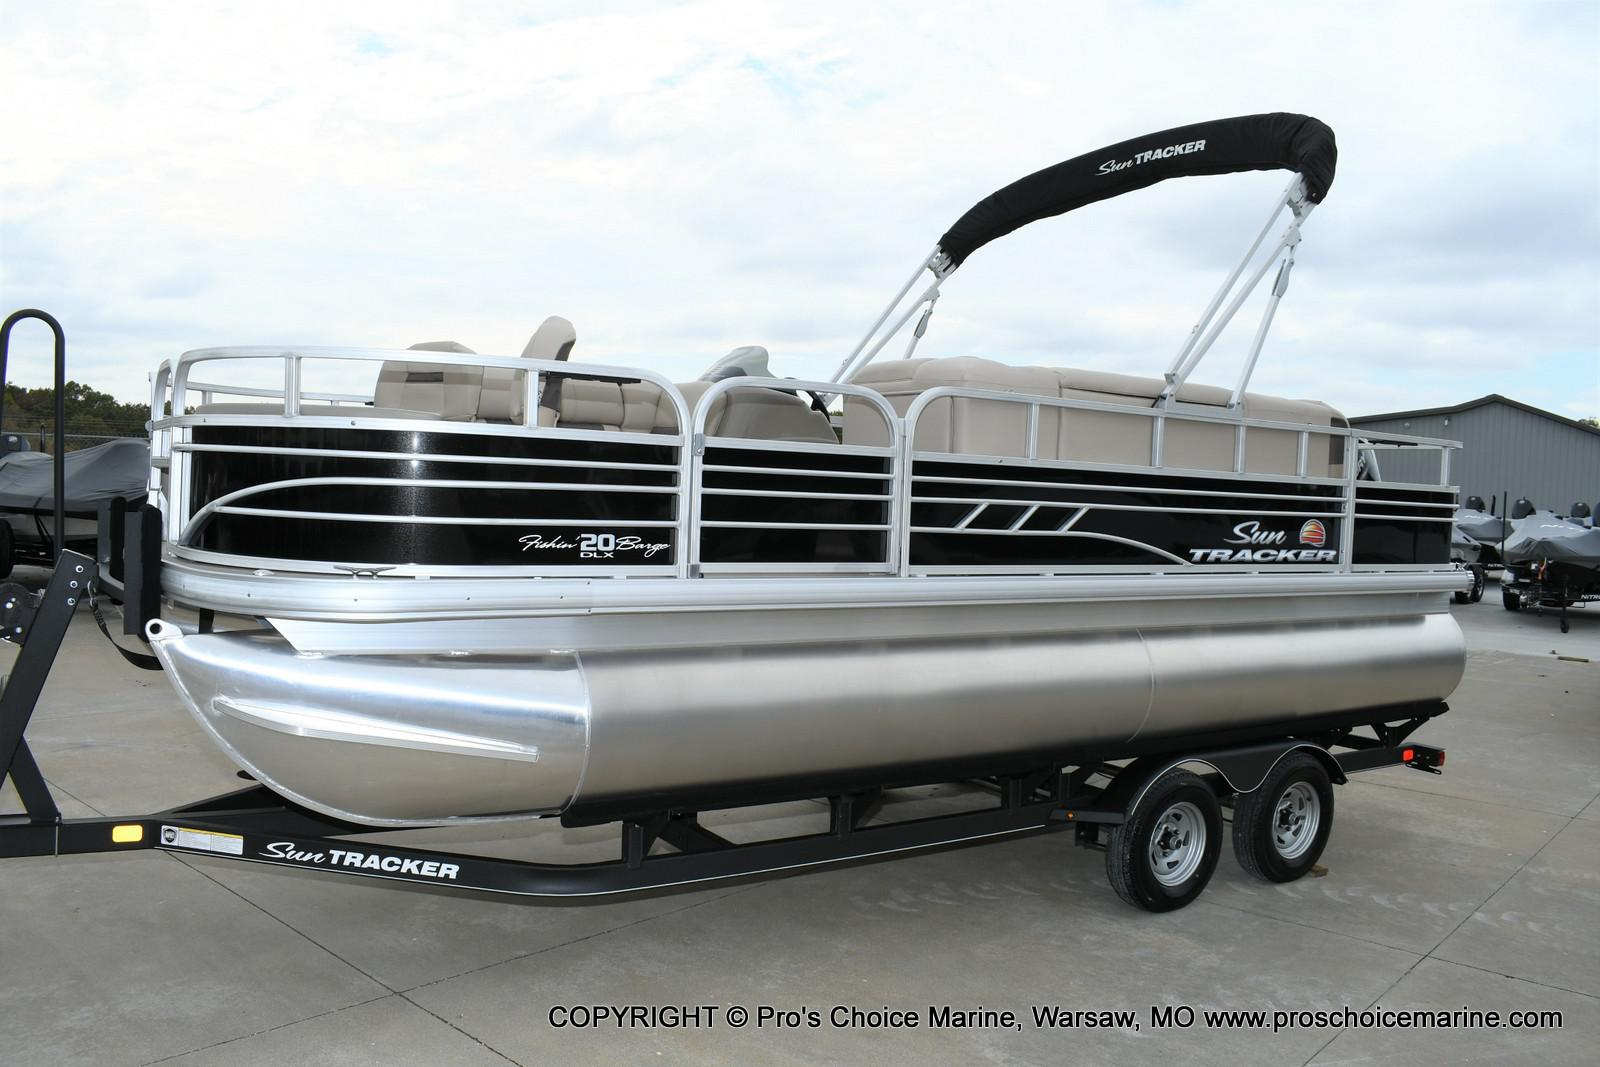 2020 Sun Tracker boat for sale, model of the boat is Fishin' Barge 20 DLX & Image # 14 of 50